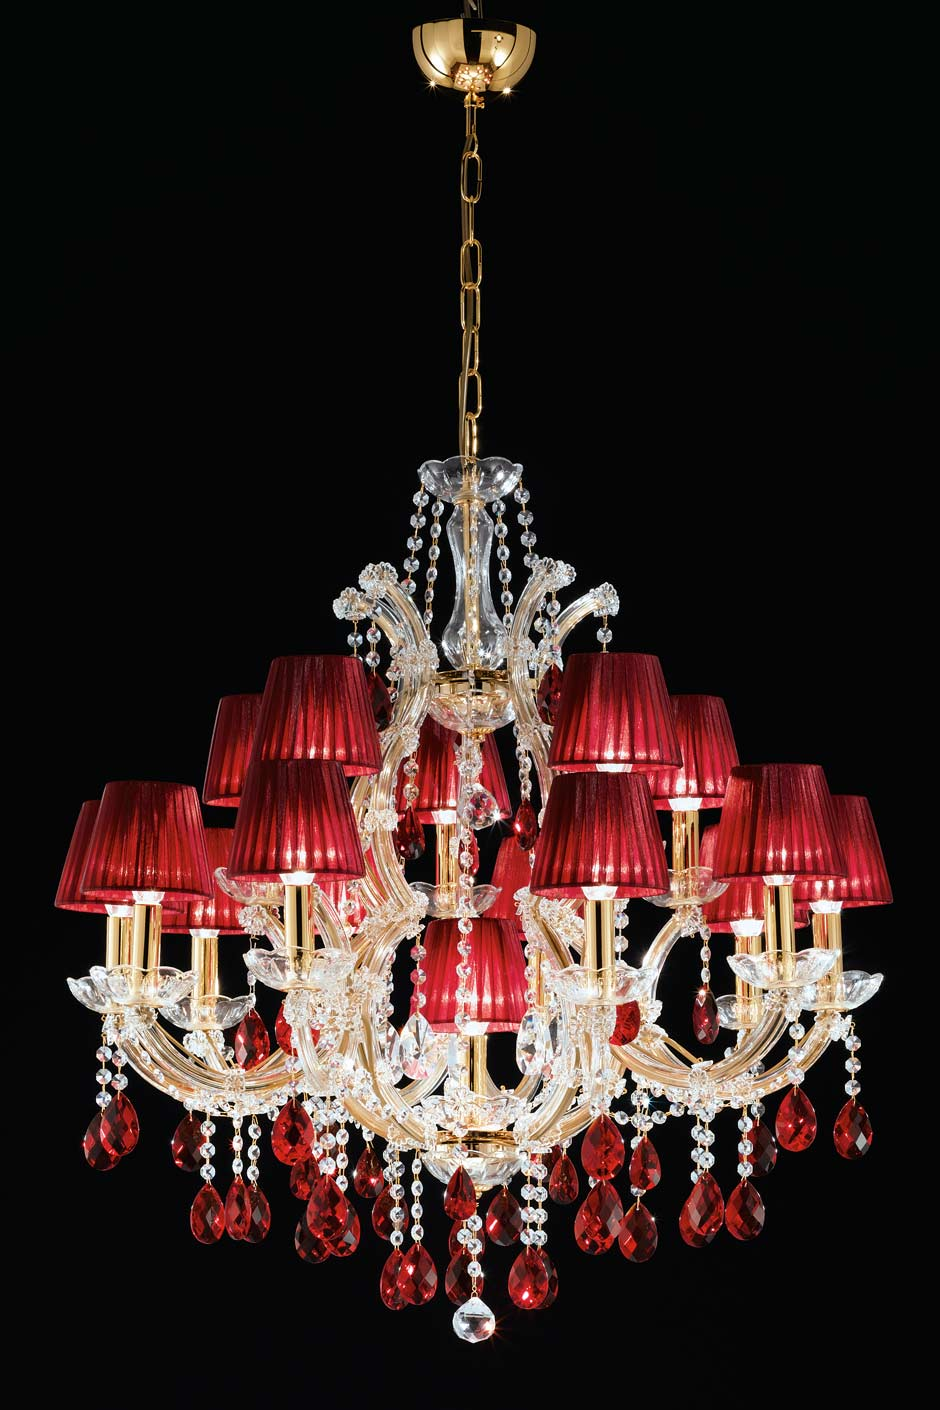 Red Chandelier Wall Lights : Red and gold 16-light crystal chandelier Masiero Murano and crystal chandeliers, lamps and ...